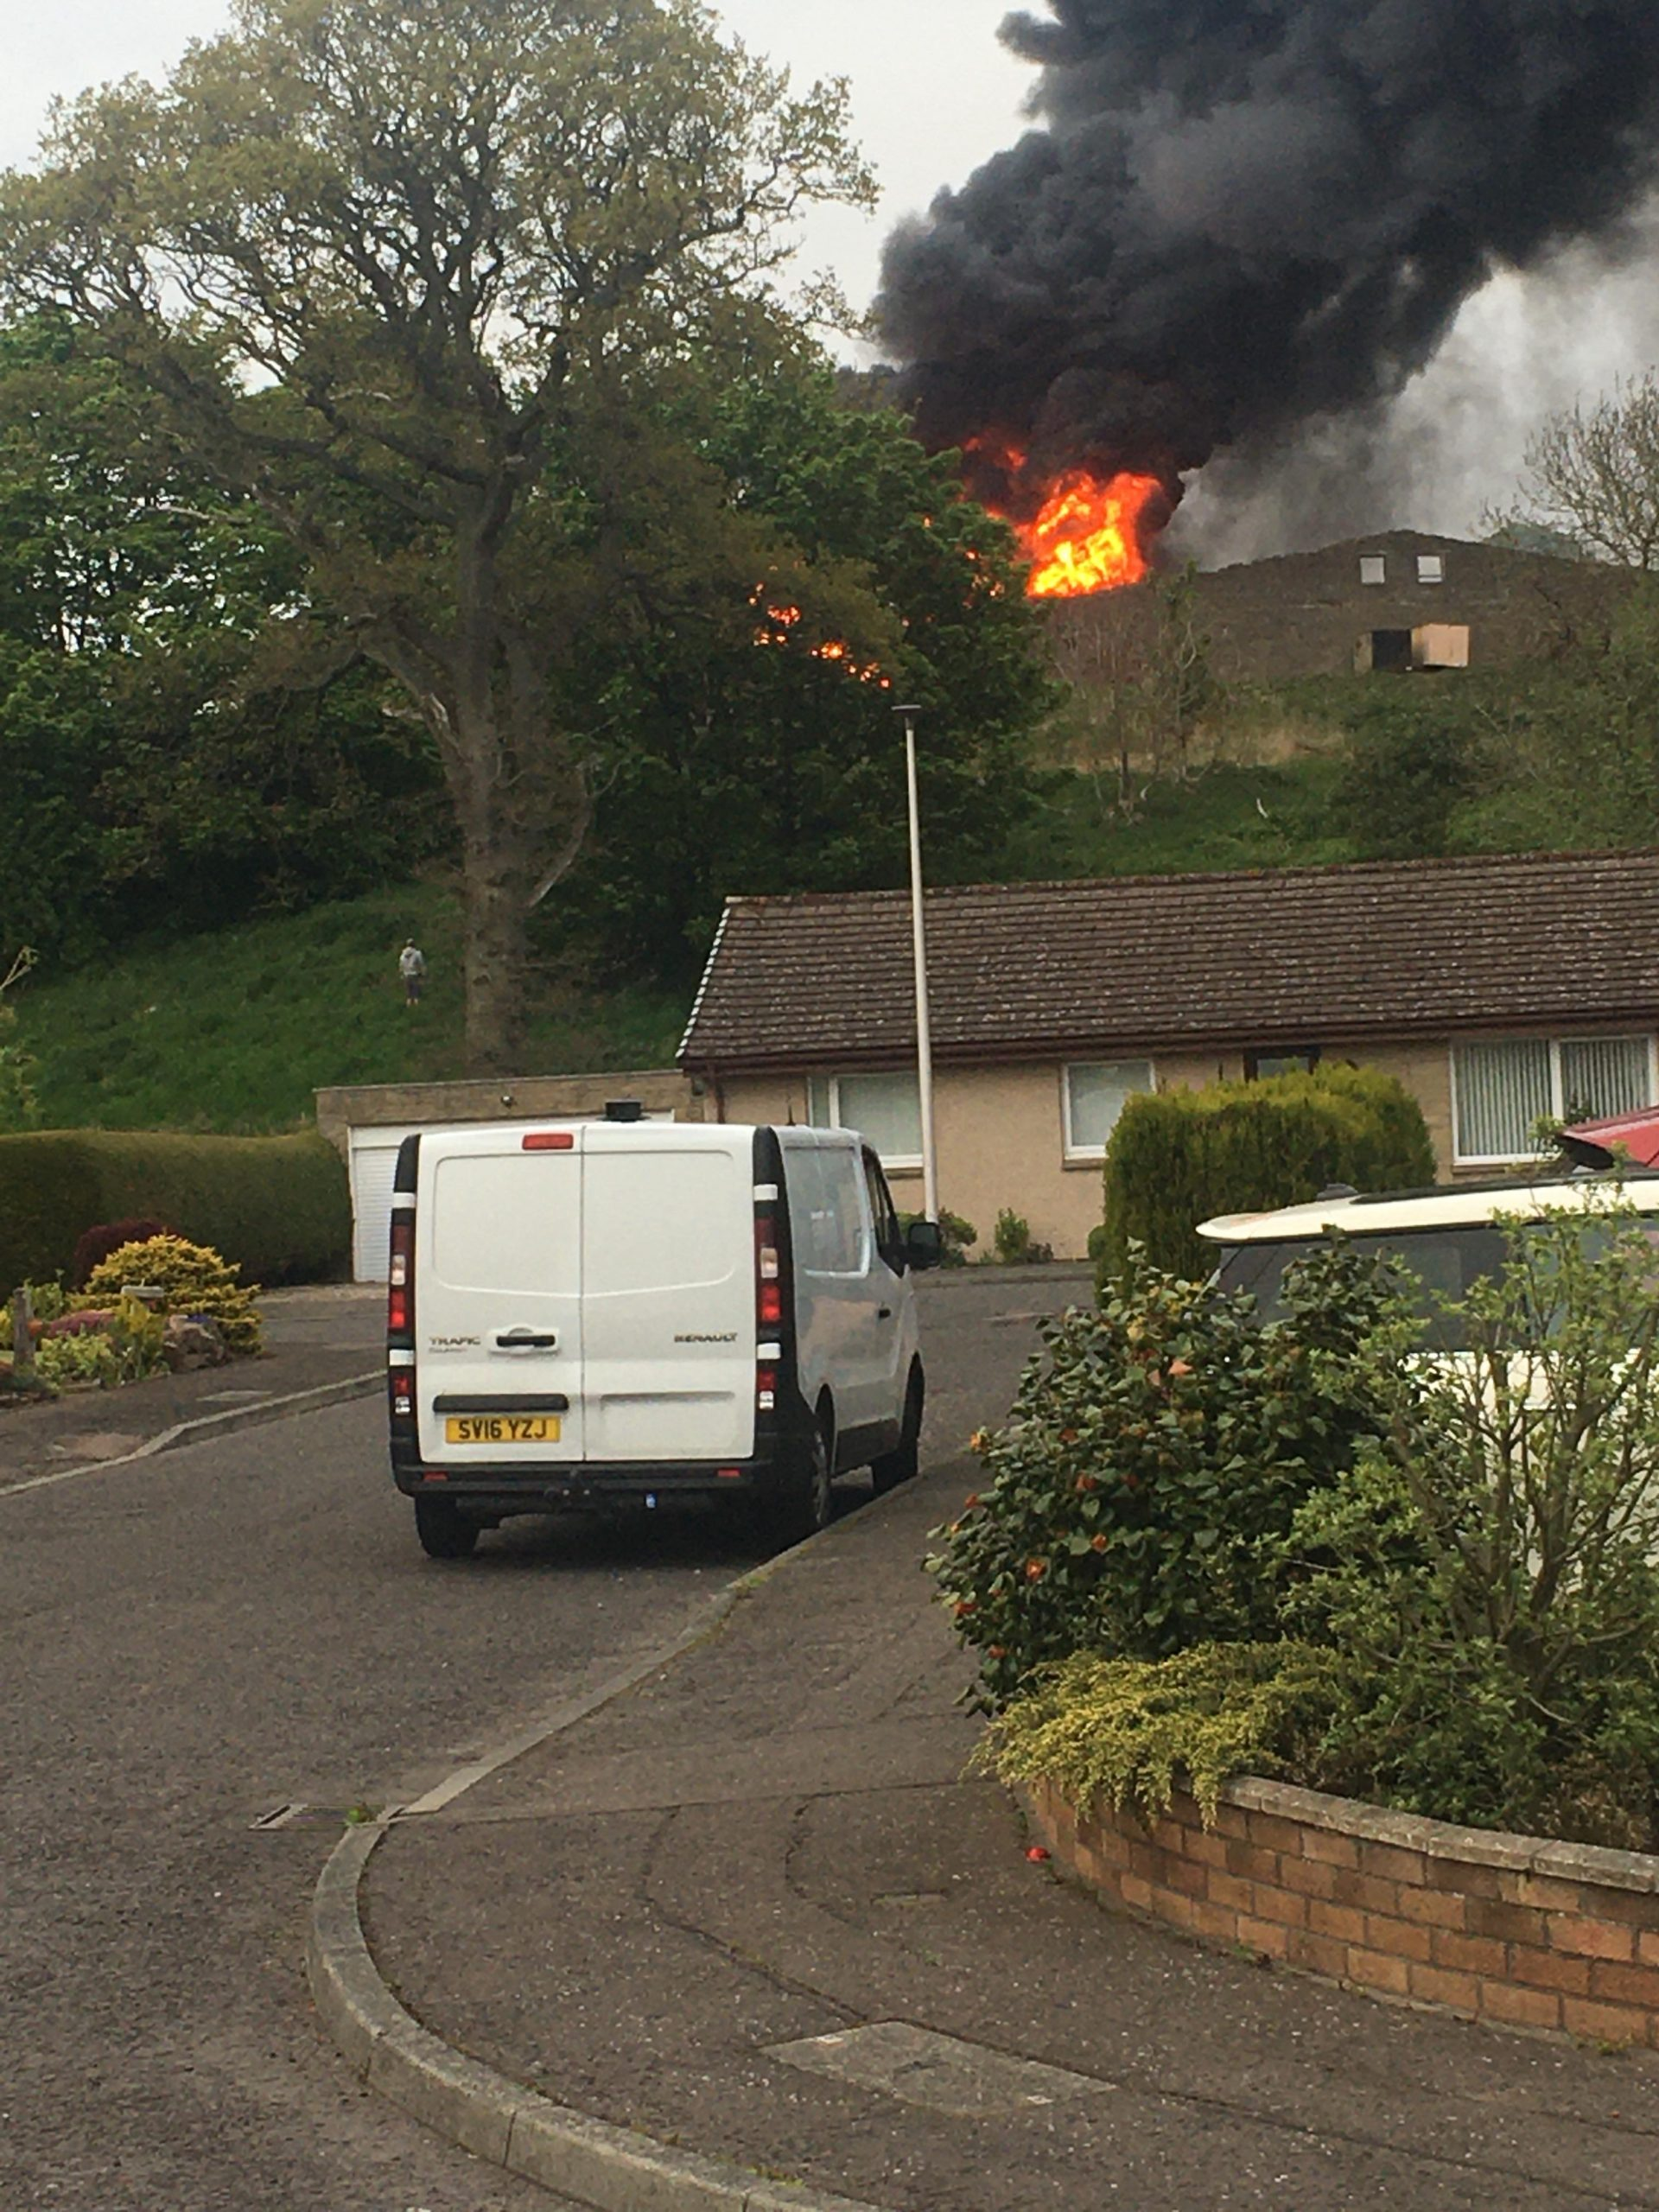 Fifefighters are dampening flames at the derelict shed in Barry, Carnoustie.